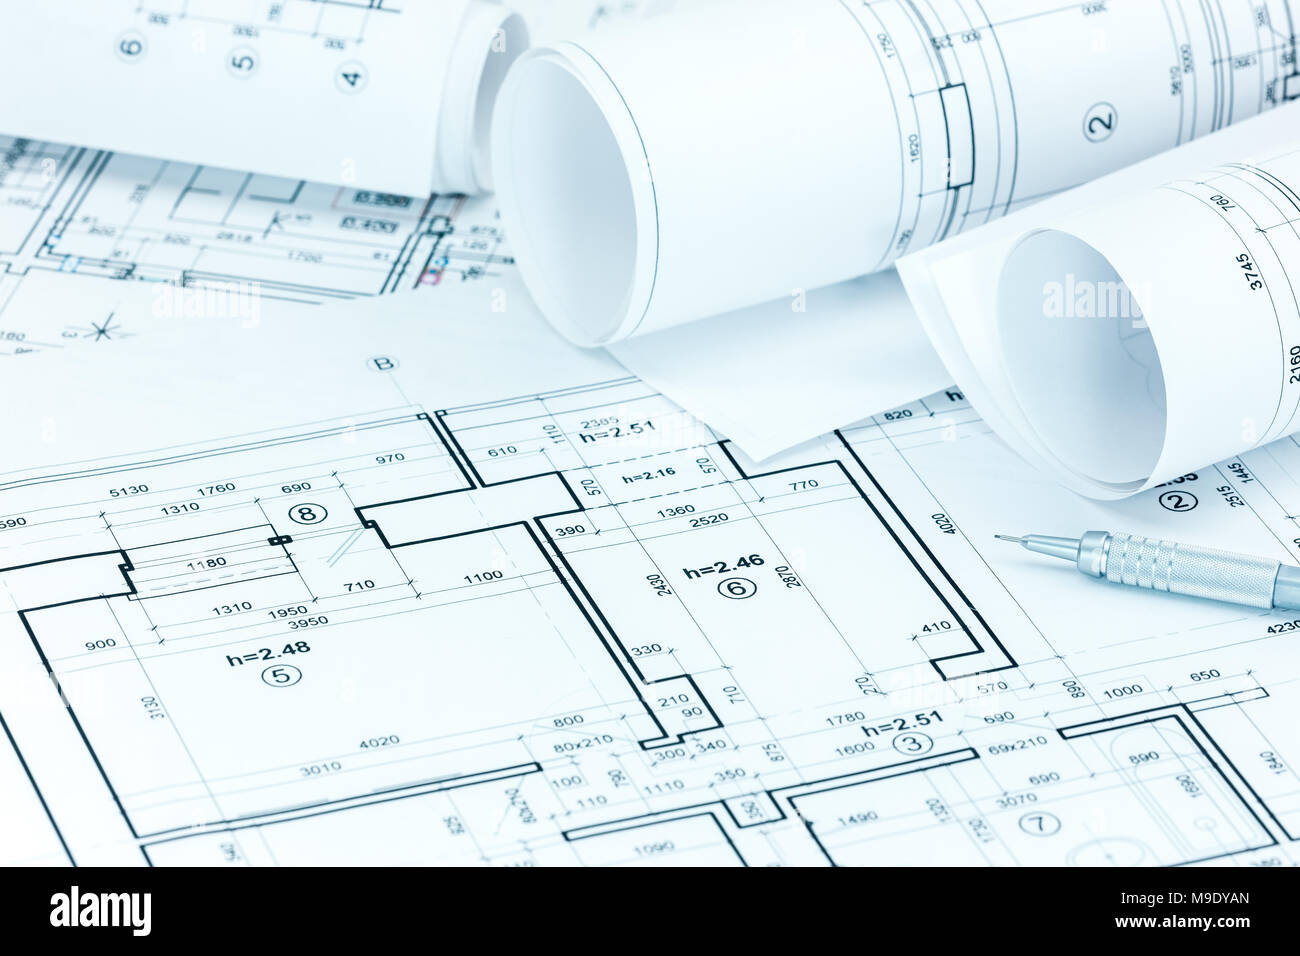 architectural project plans and blueprint rolls pencil on architect